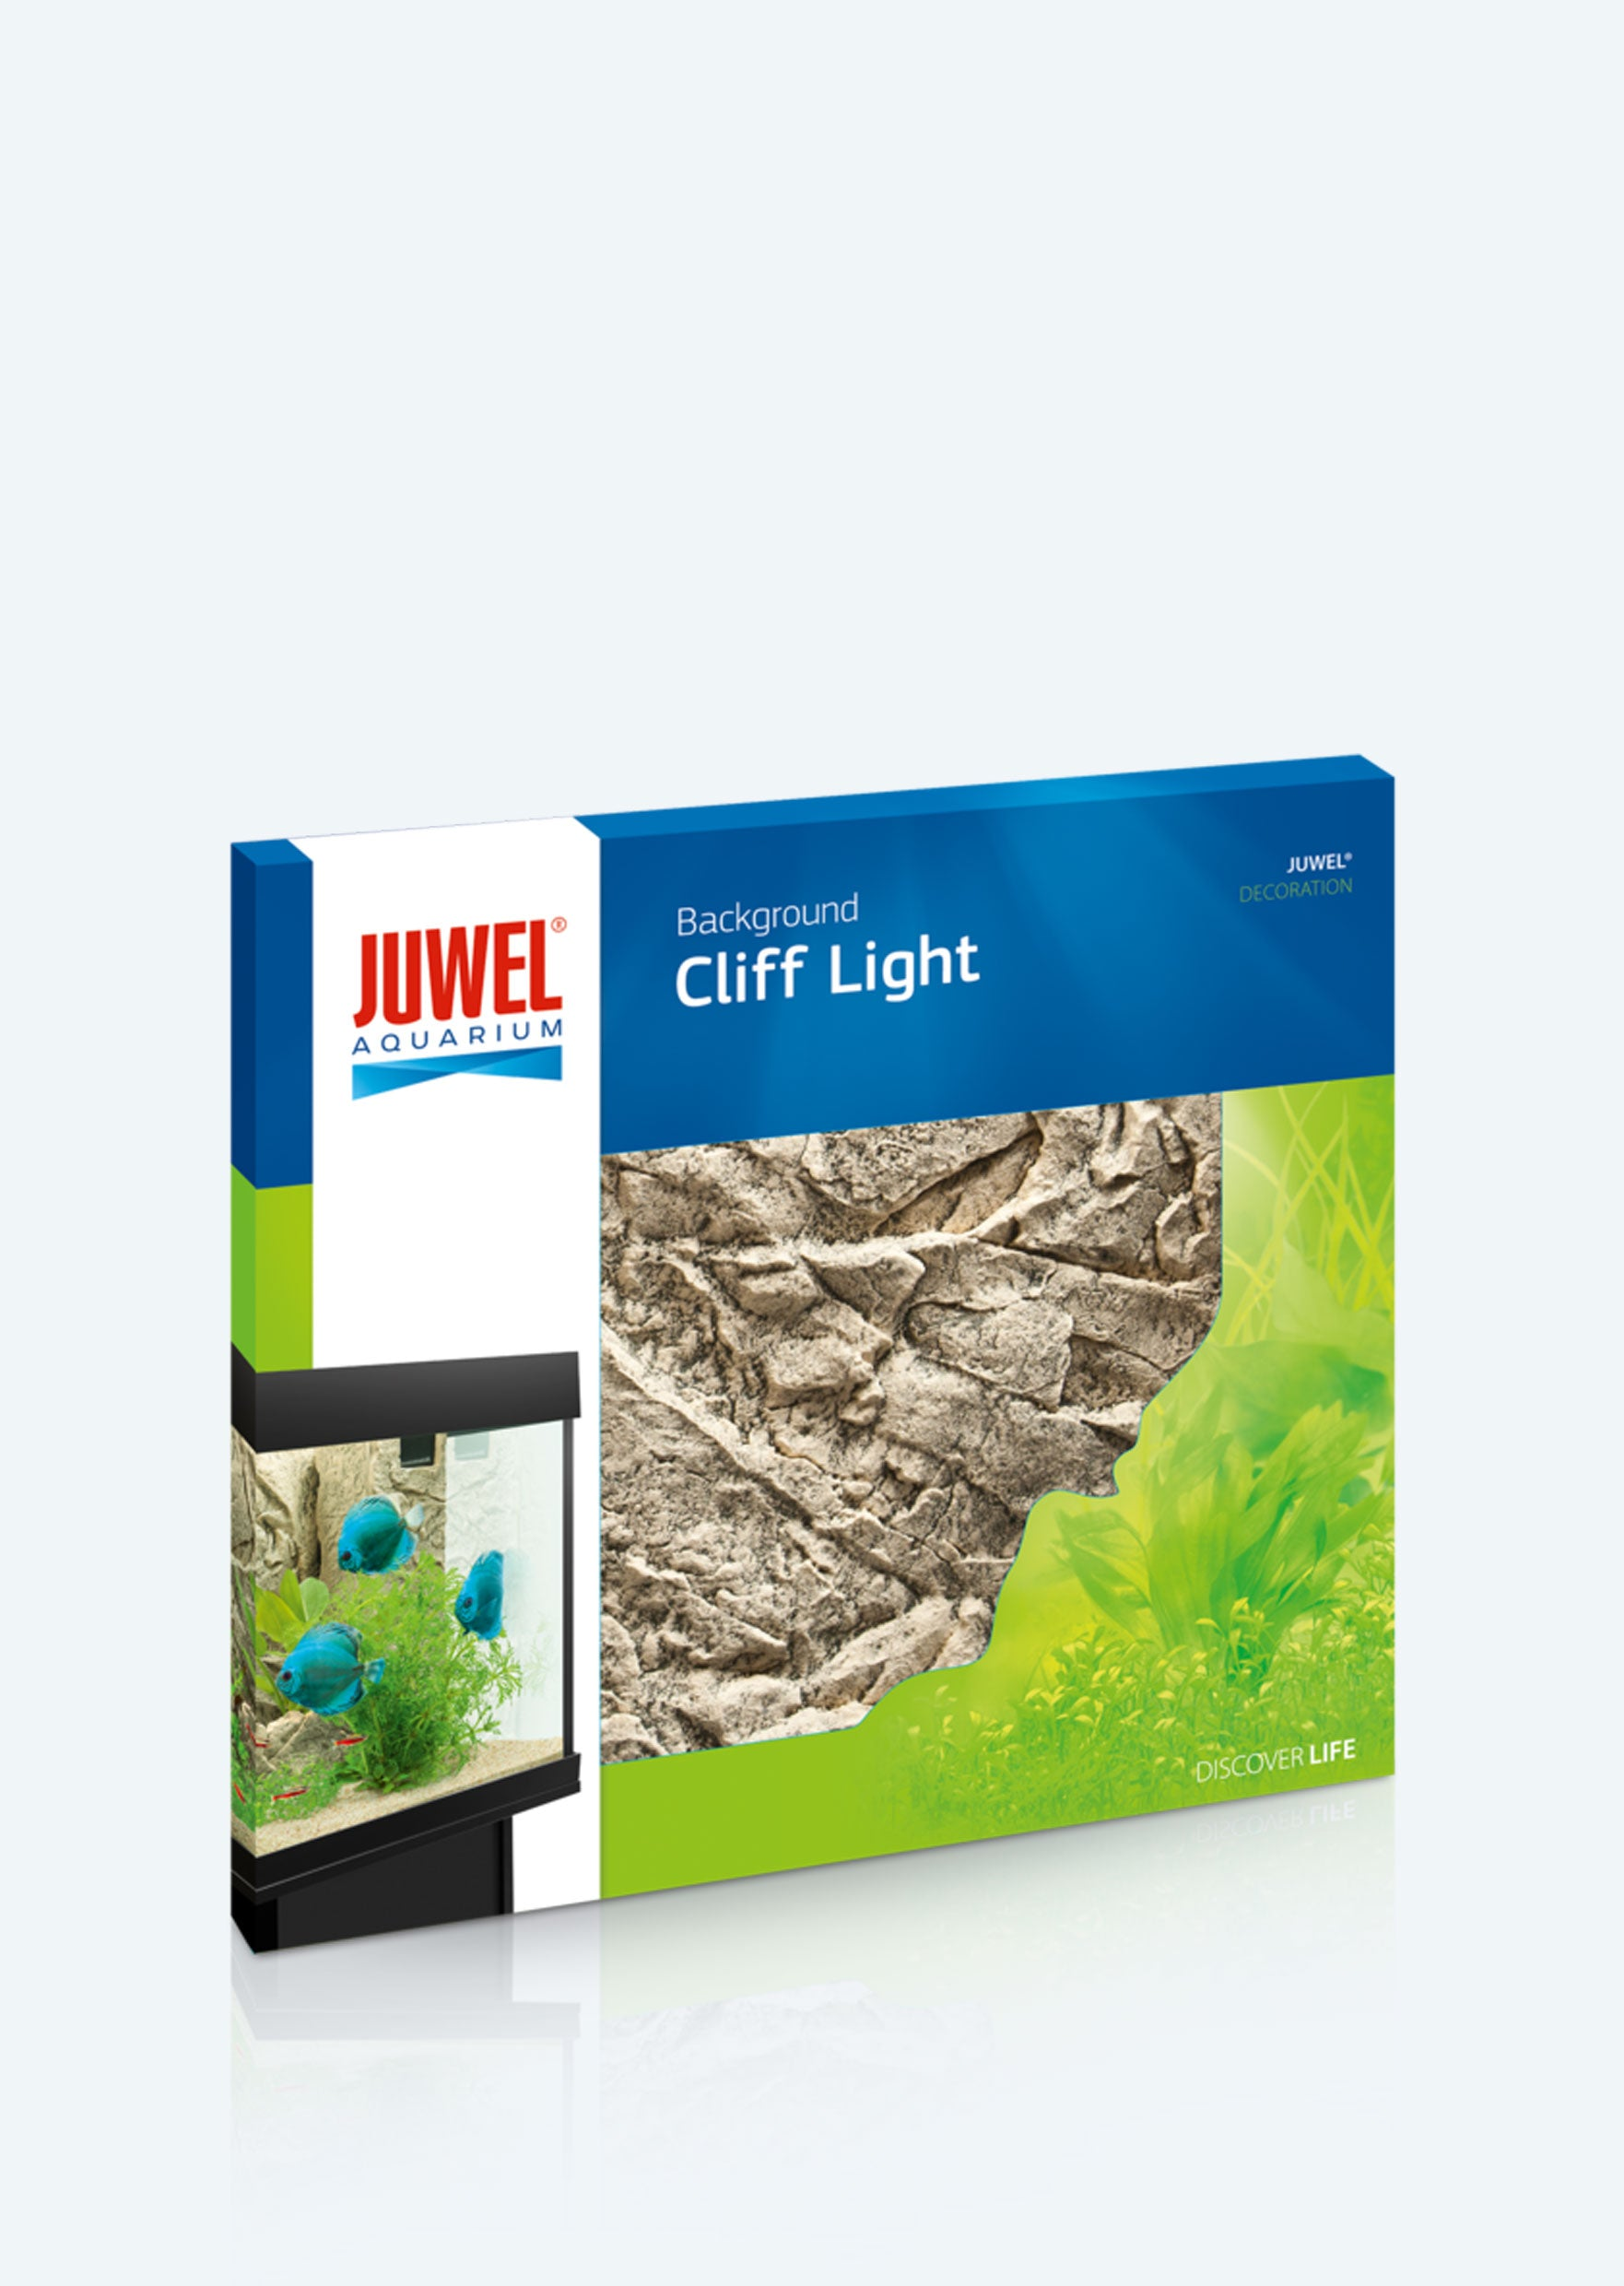 JUWEL Background: Cliff Light